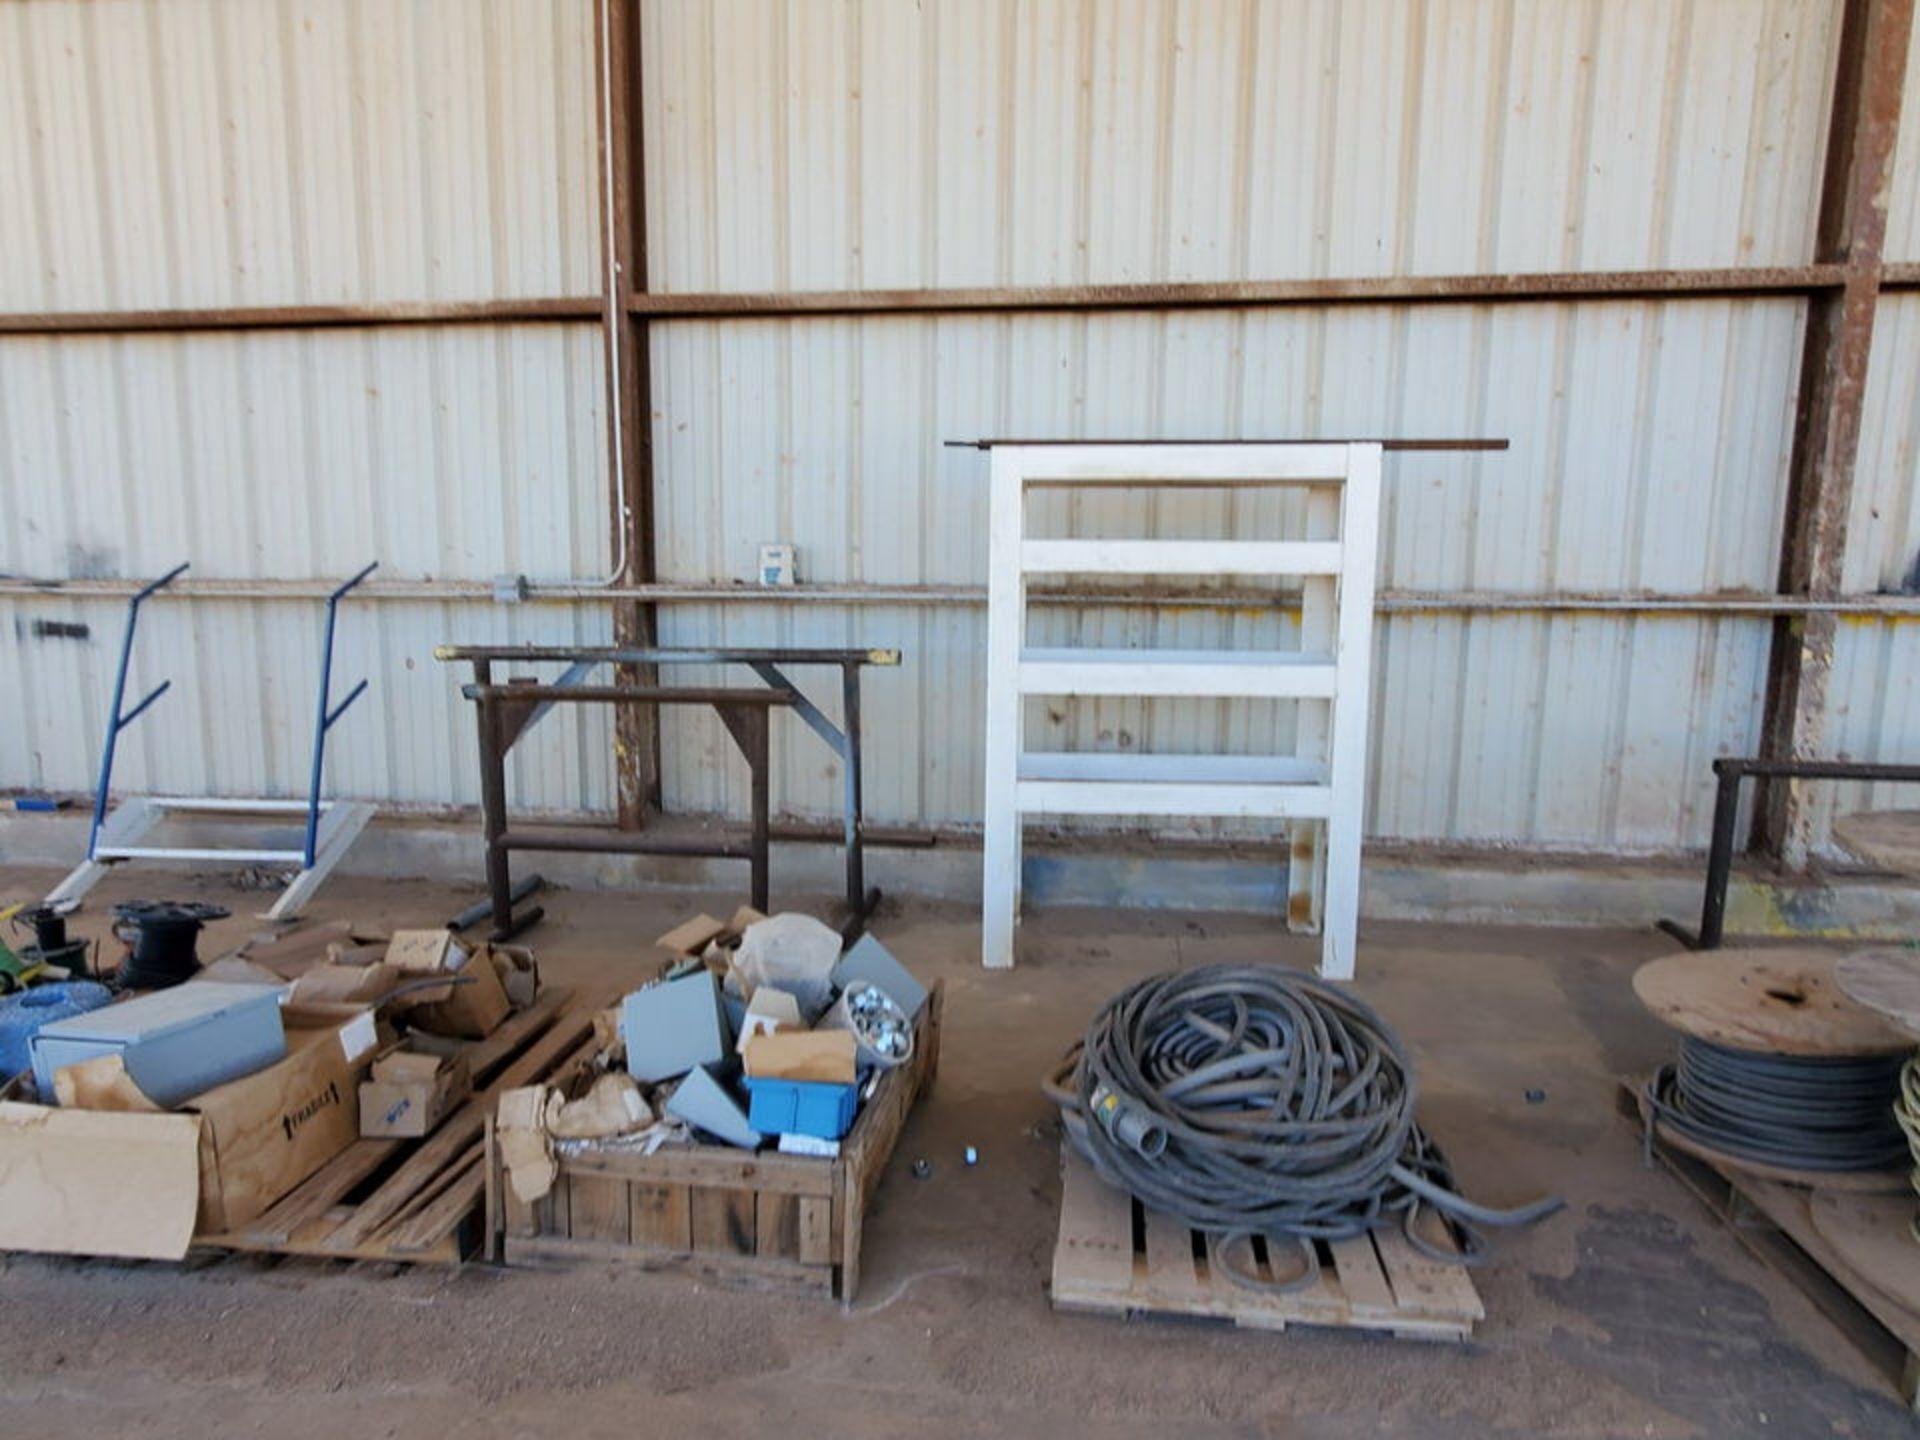 Misc. Matl. To Include But Not Limited To: Lift Basket, Welding Table, Sheet Metal, Ele Wire, Rope - Image 7 of 13